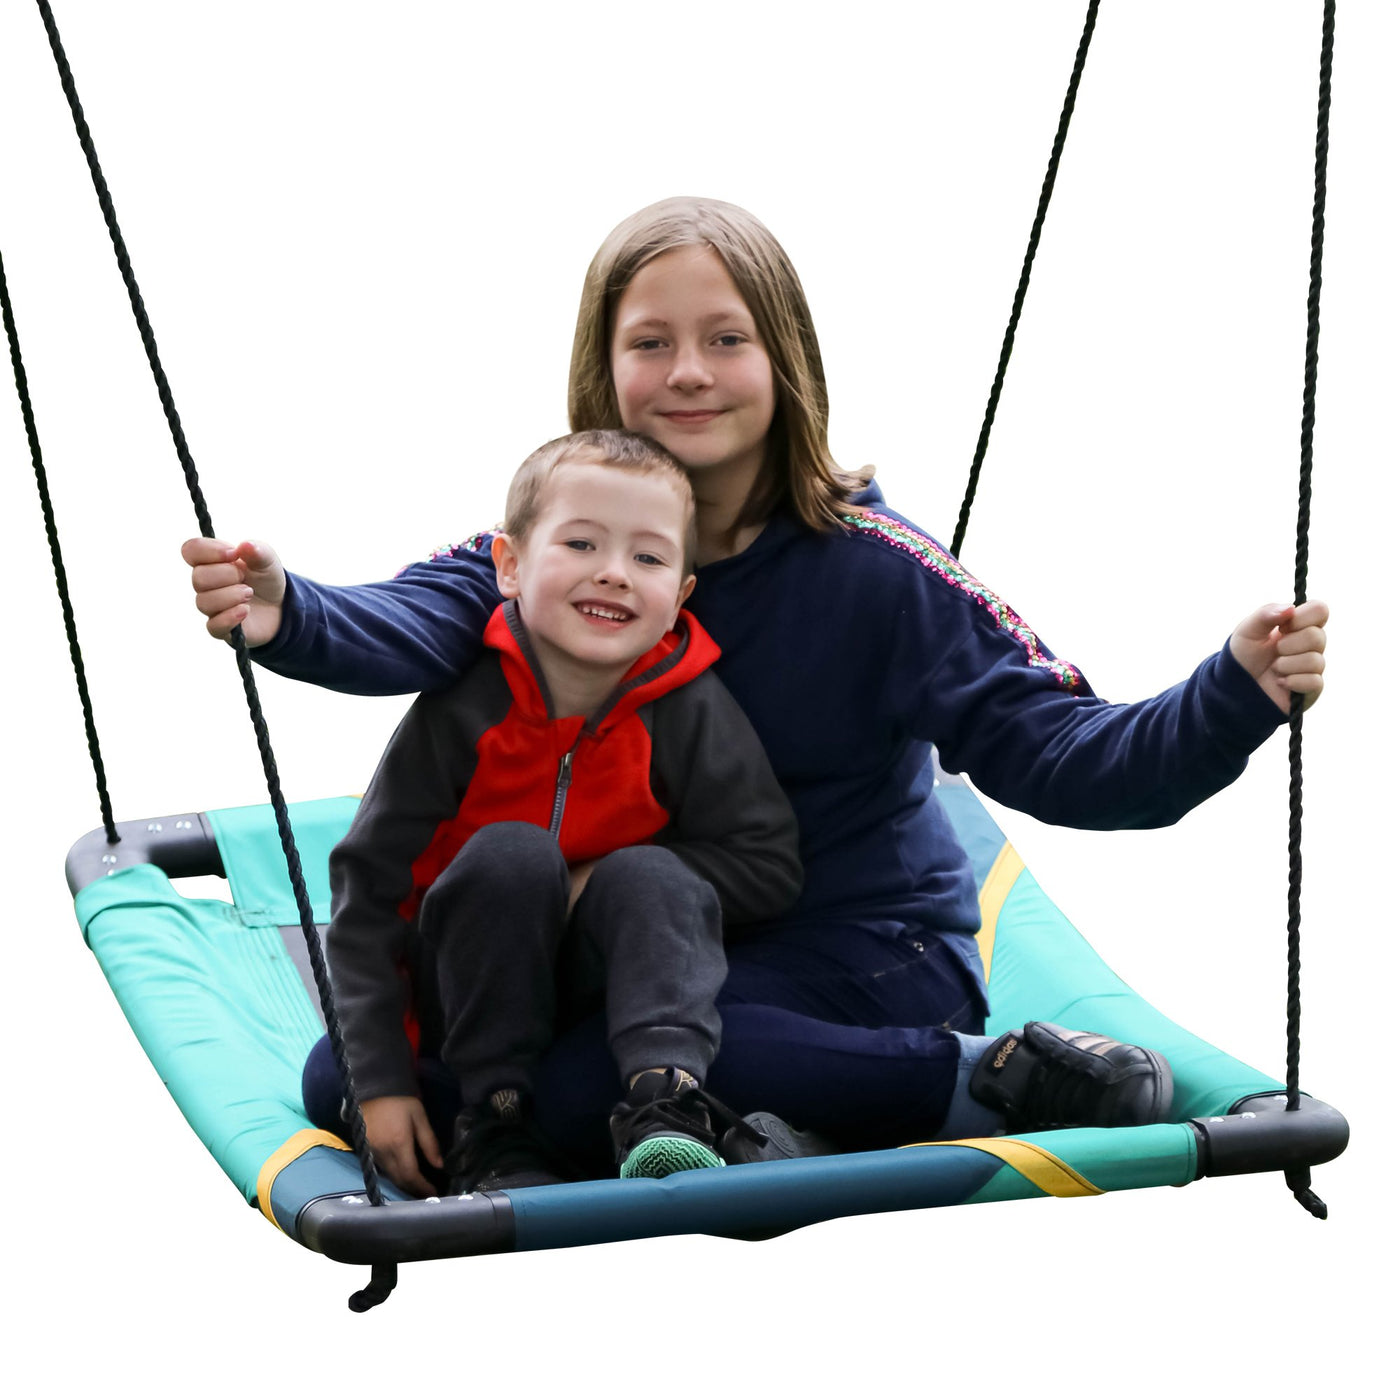 Rainbow Gliderz Horizon Swing with Two Riders on Swing